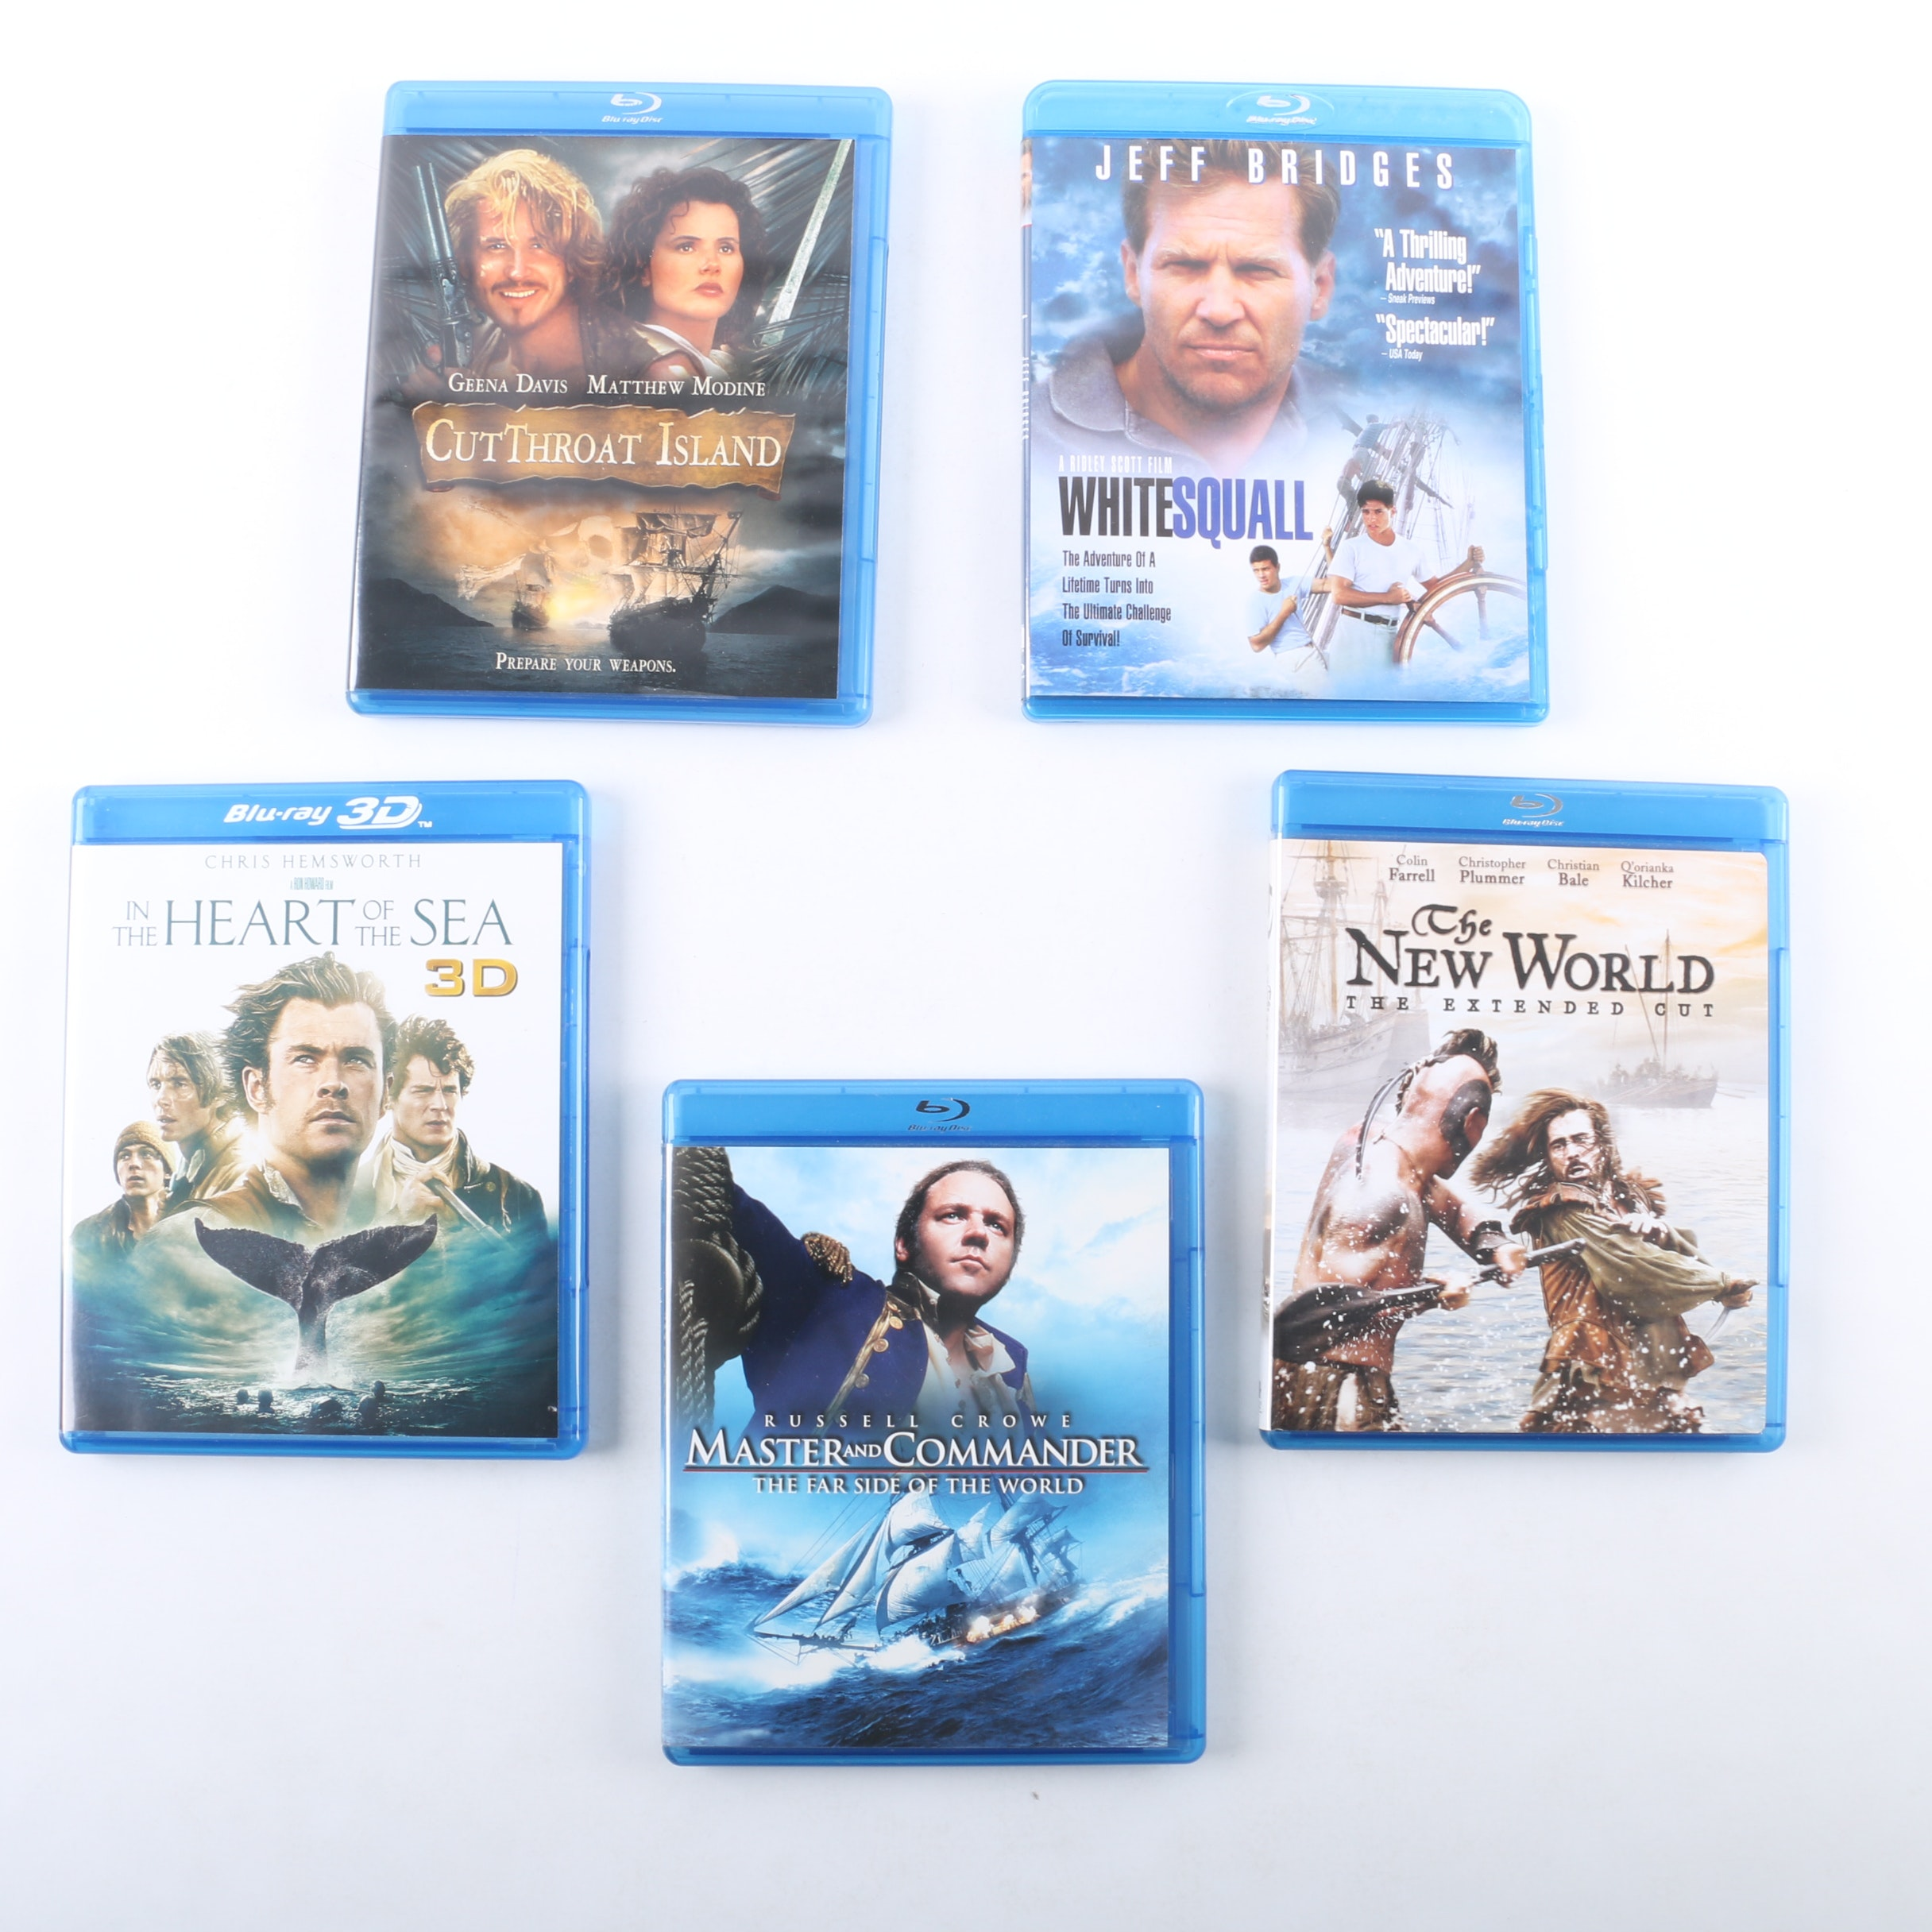 Nautical Action and Adventure Blu-ray Discs